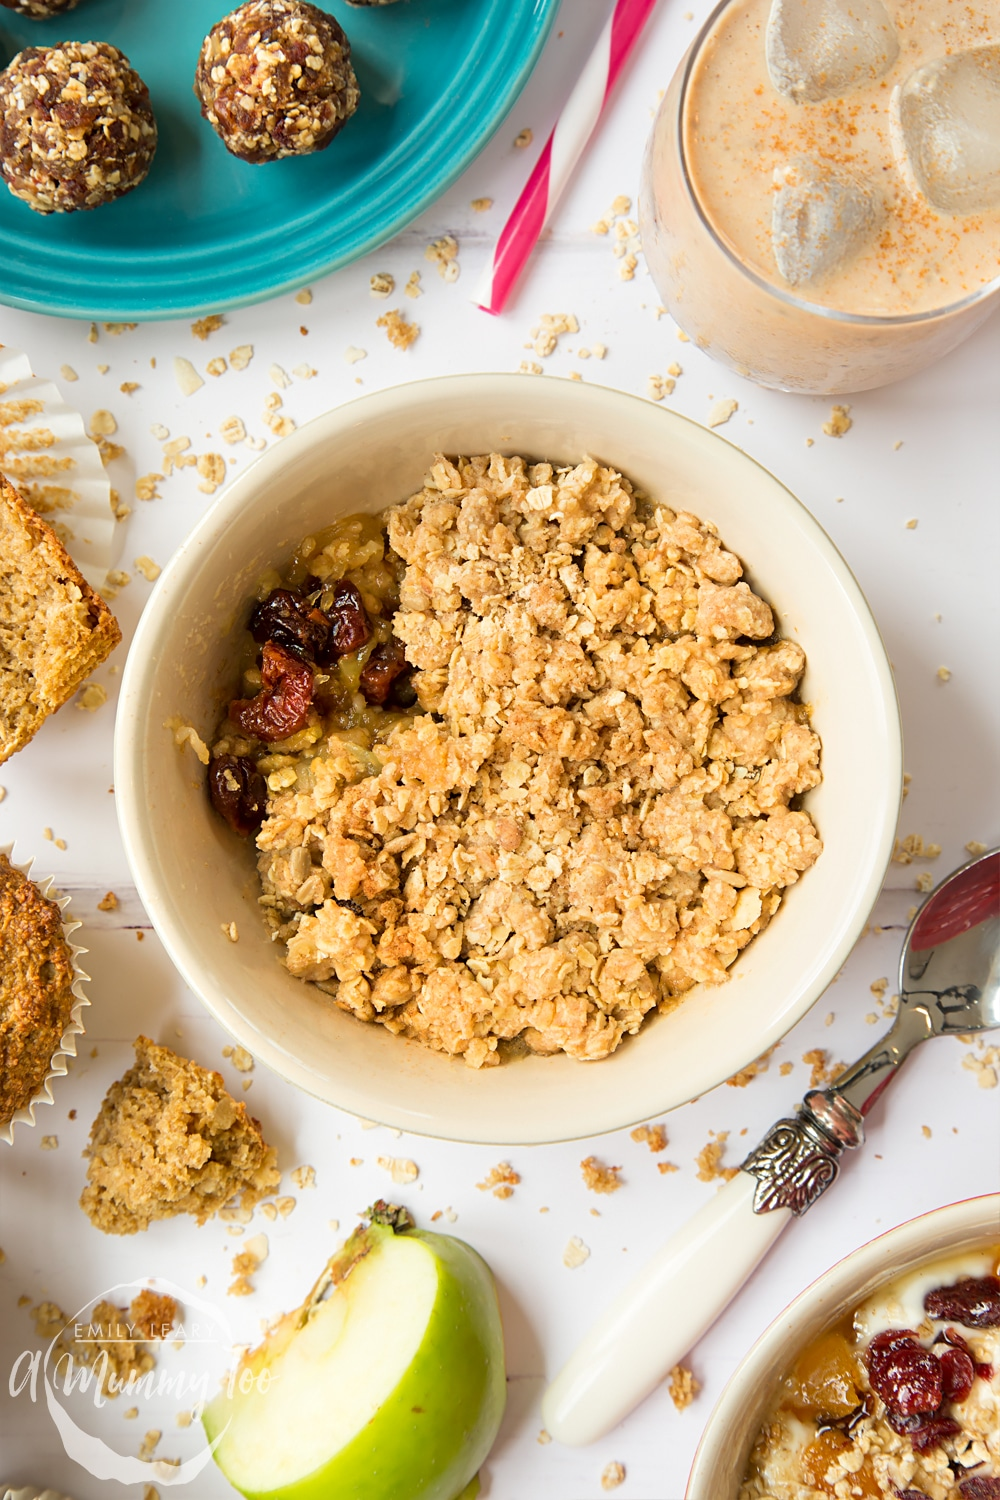 A delicious apple cherry granola crumble, shown alongside date and granola energy balls, spiced granola smoothie and breakfast bran muffins